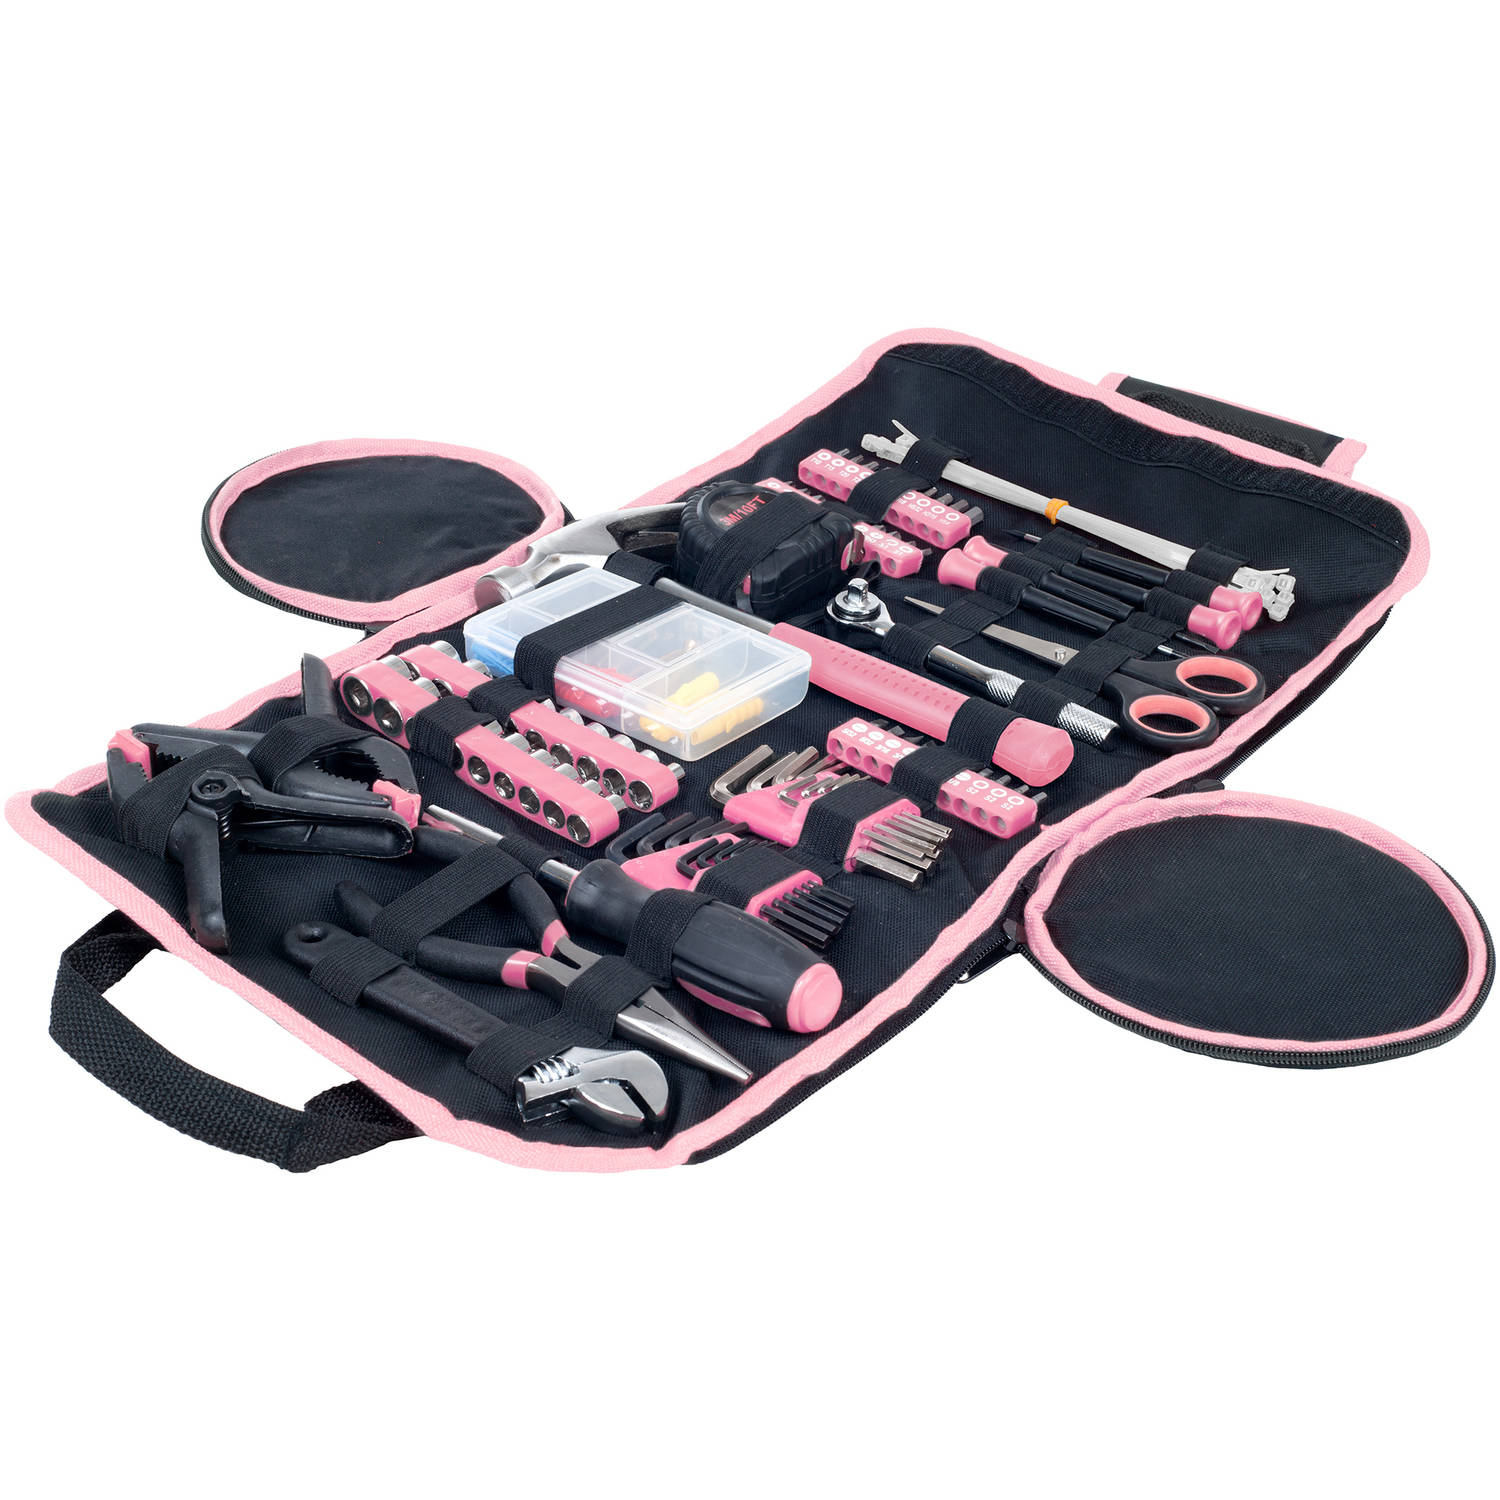 Stalwart 86-Piece Household Hand Tool Set With Roll-Up Bag, Pink | 75-HT2086